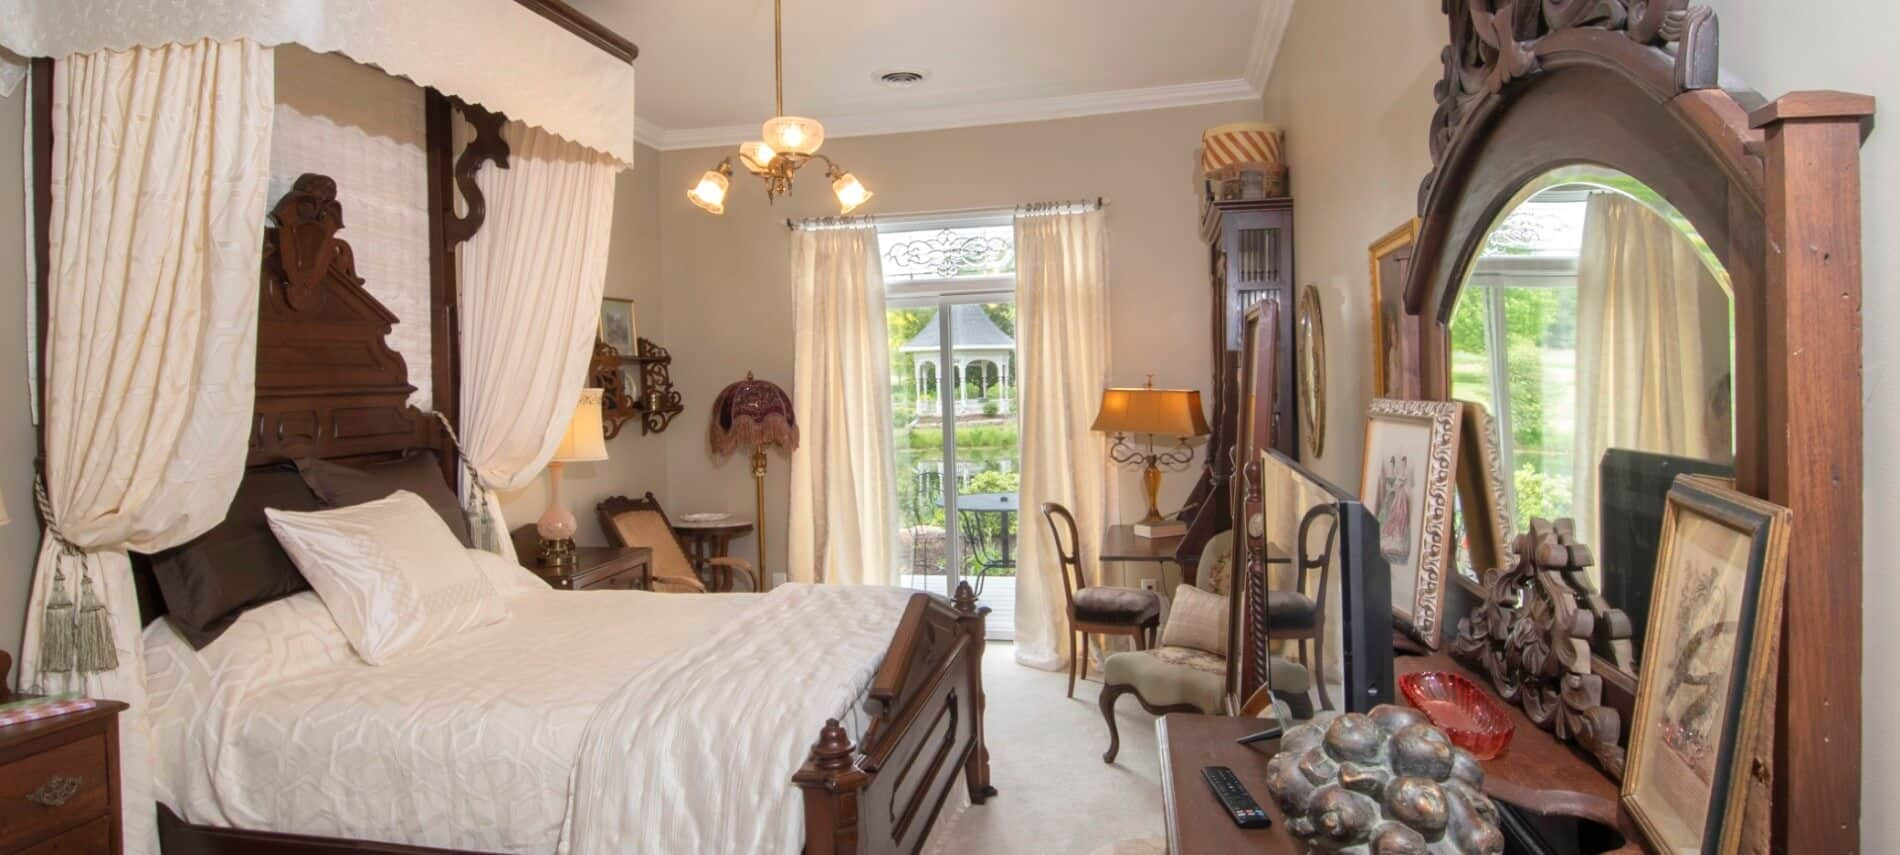 Elegant ivory bedroom holds large antique bed with an antique draped headboard.